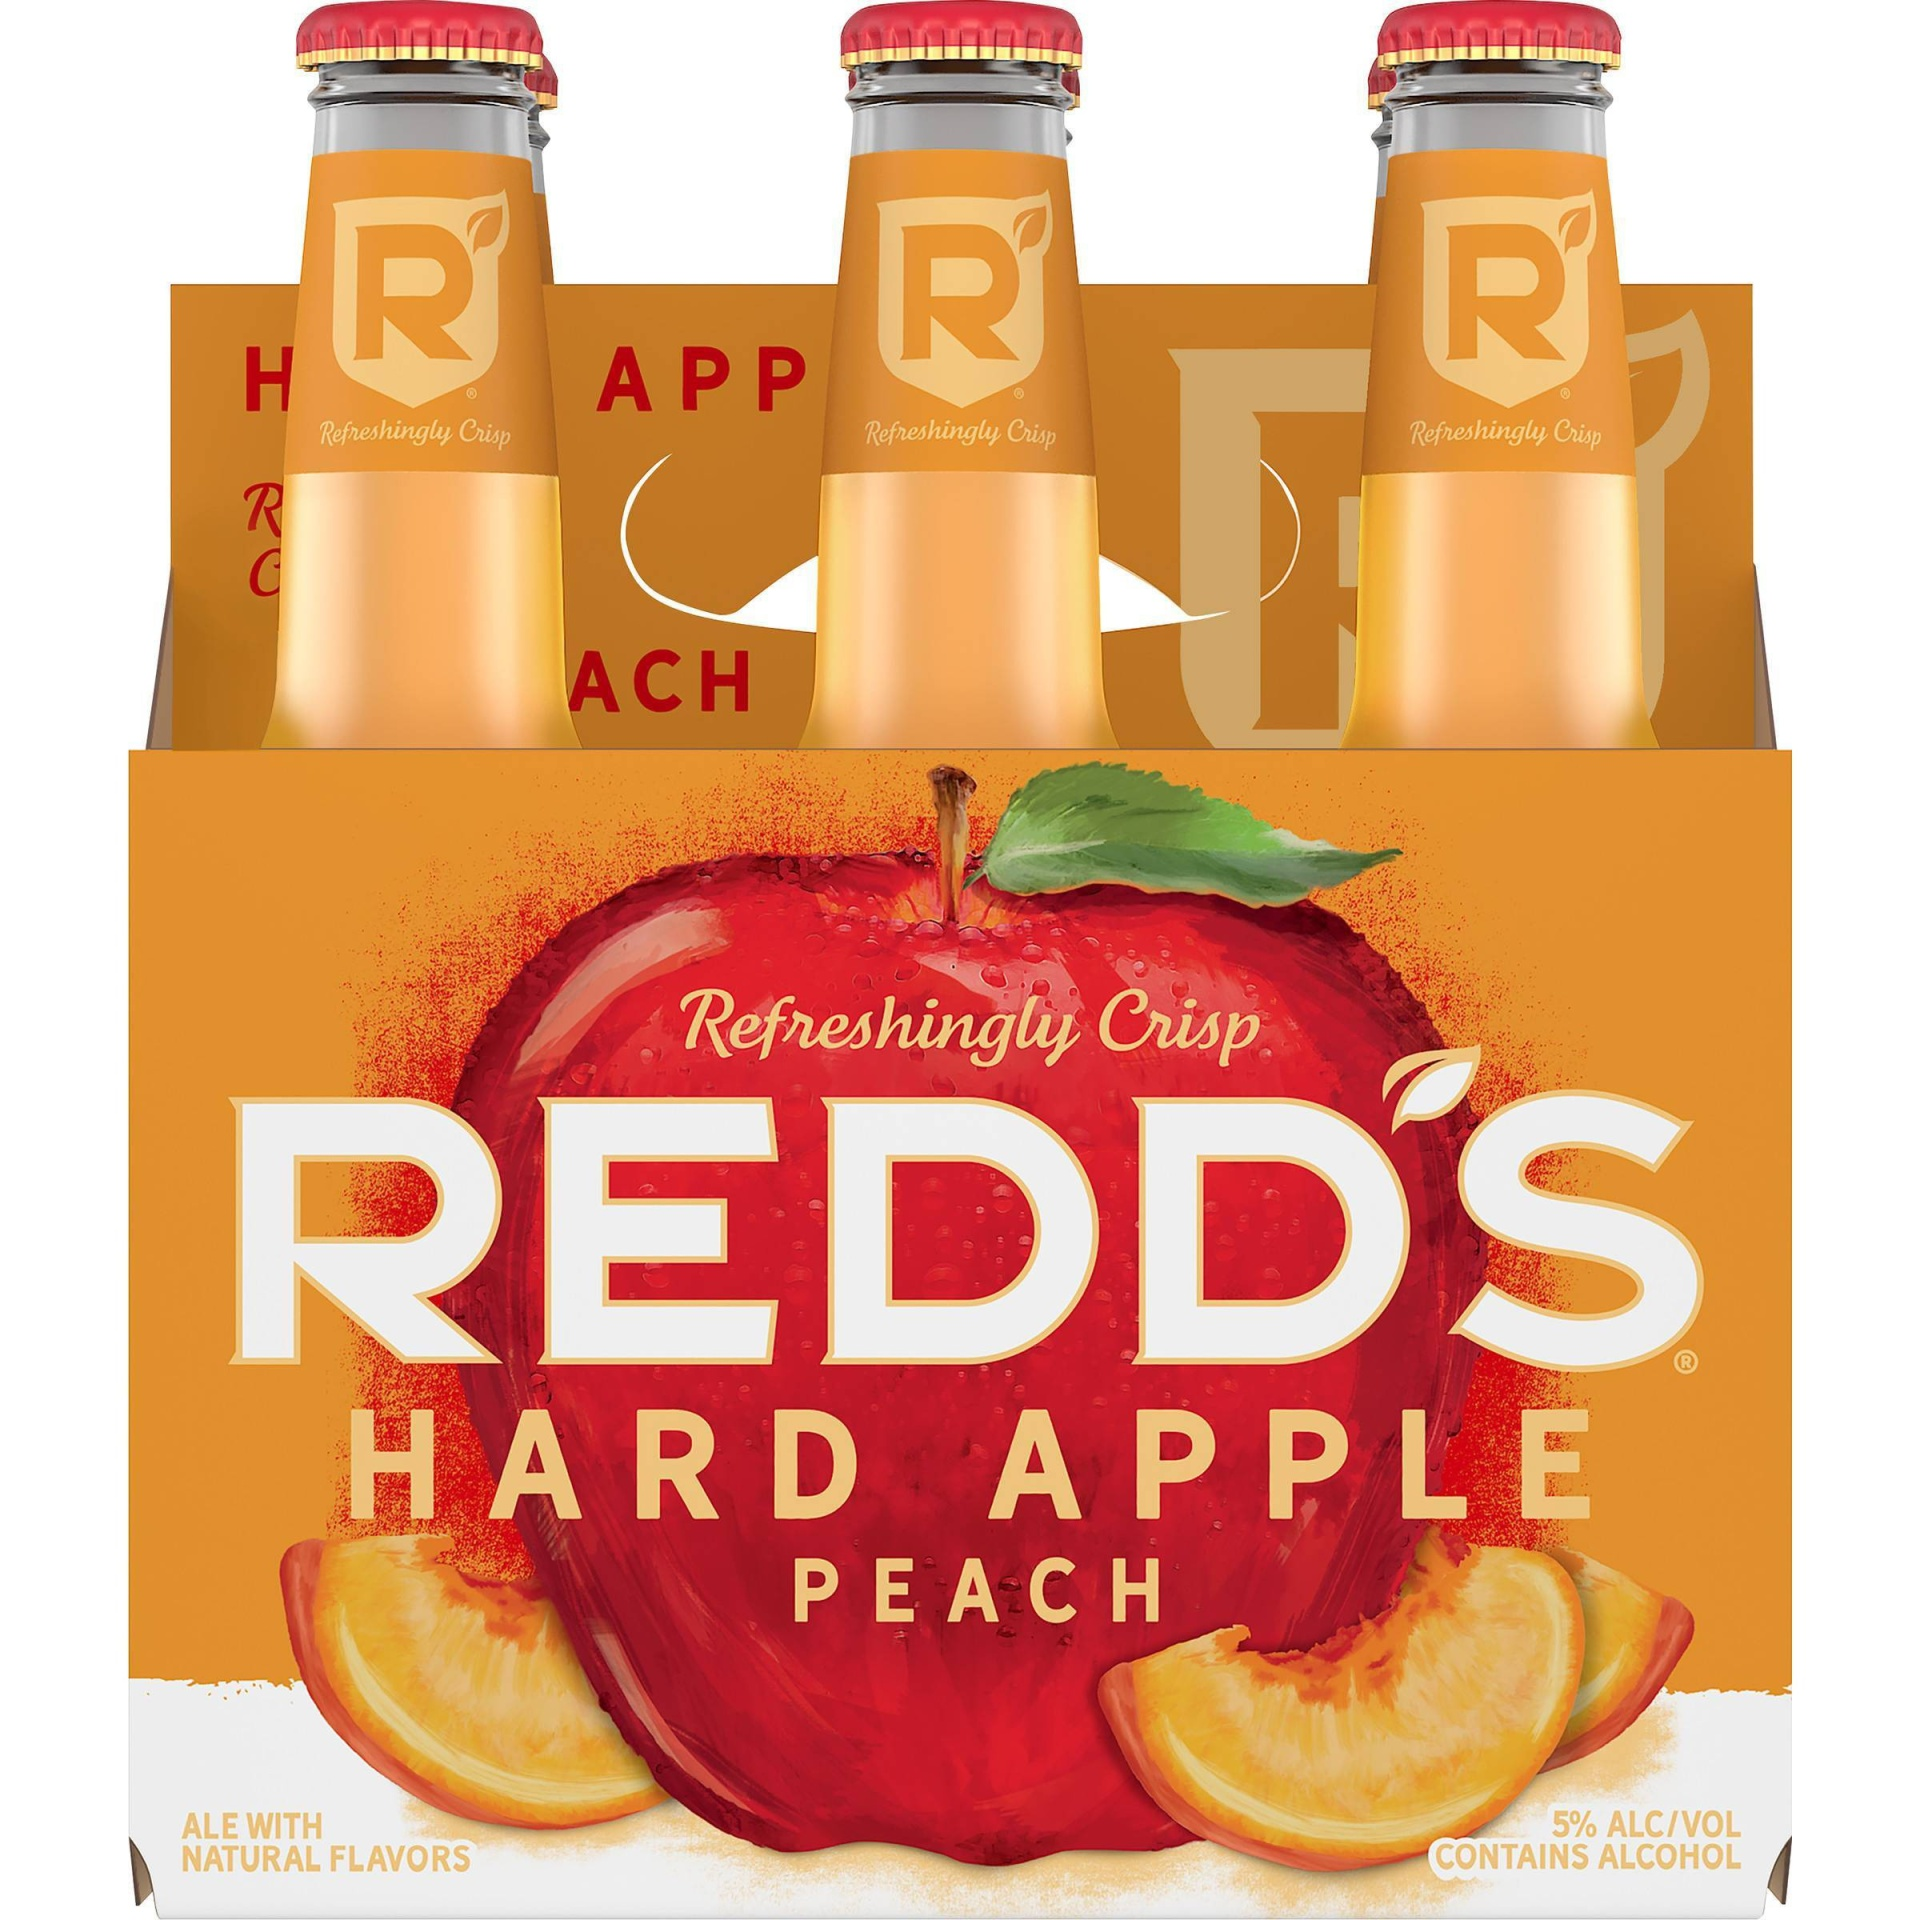 slide 1 of 4, Redd's Hard Apple Peach Ale Beer / Bottles,